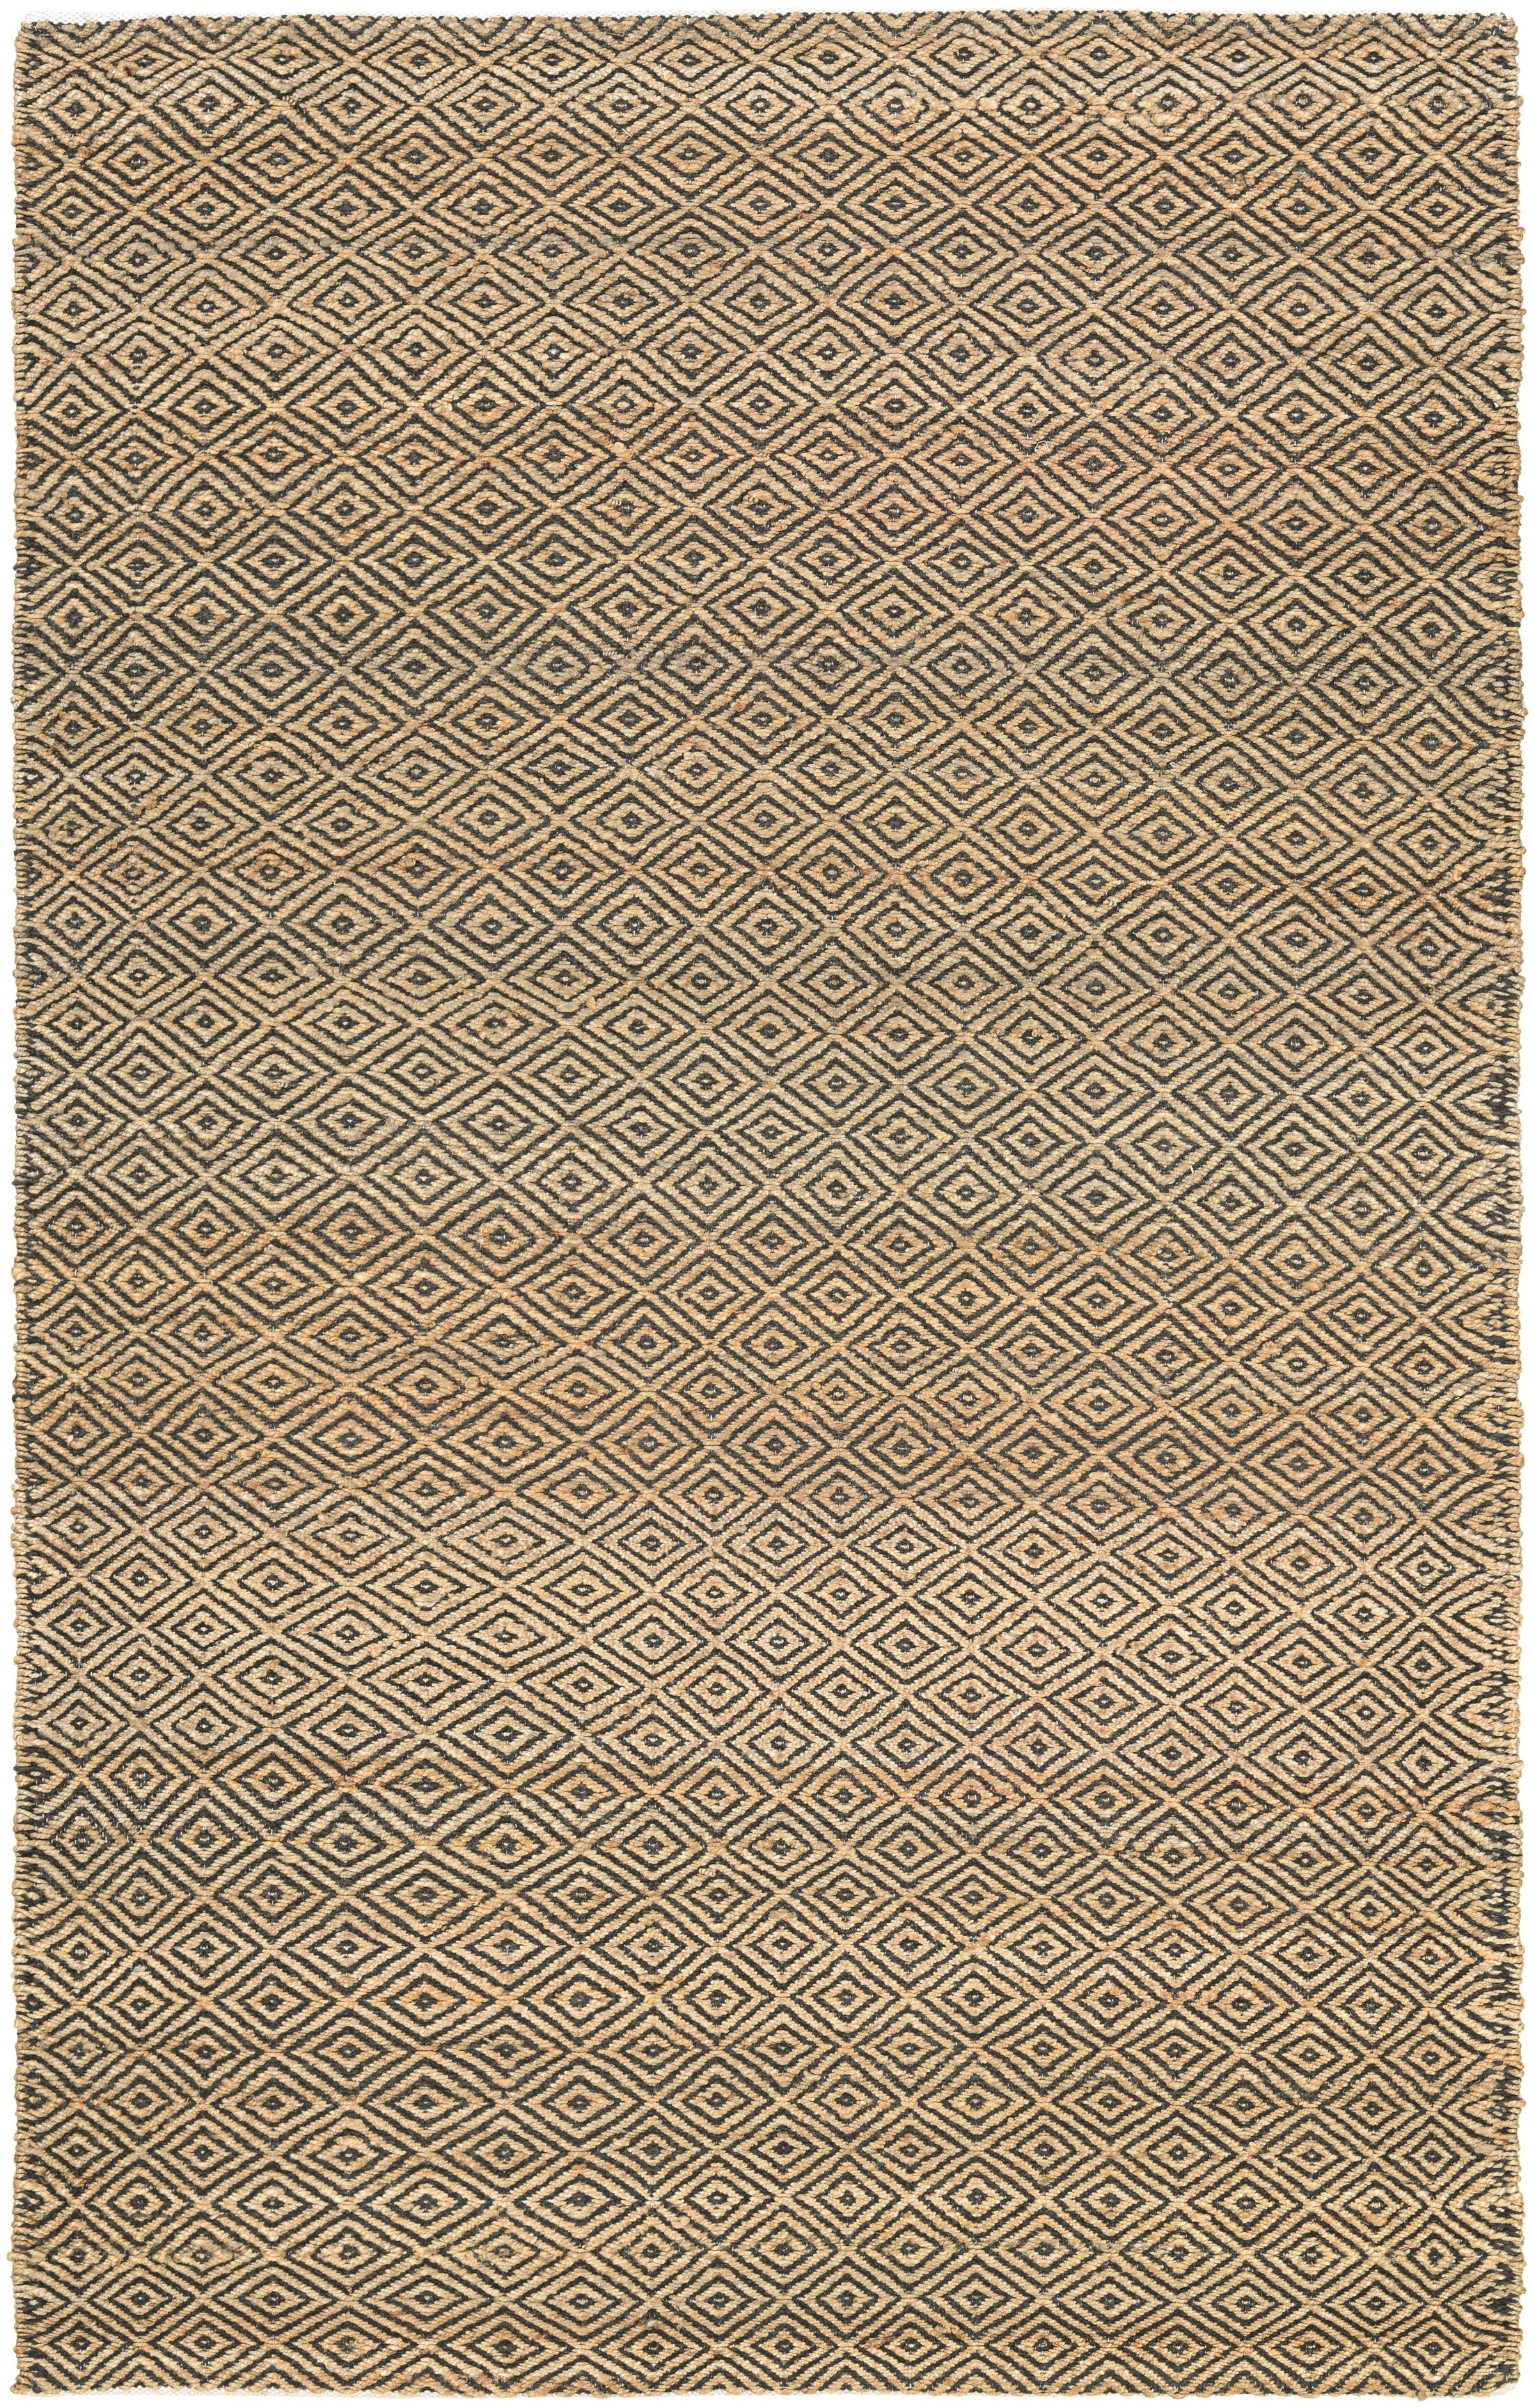 Uhlig Hand-Woven Linen Area Rug Rug Size: Rectangle 3'5